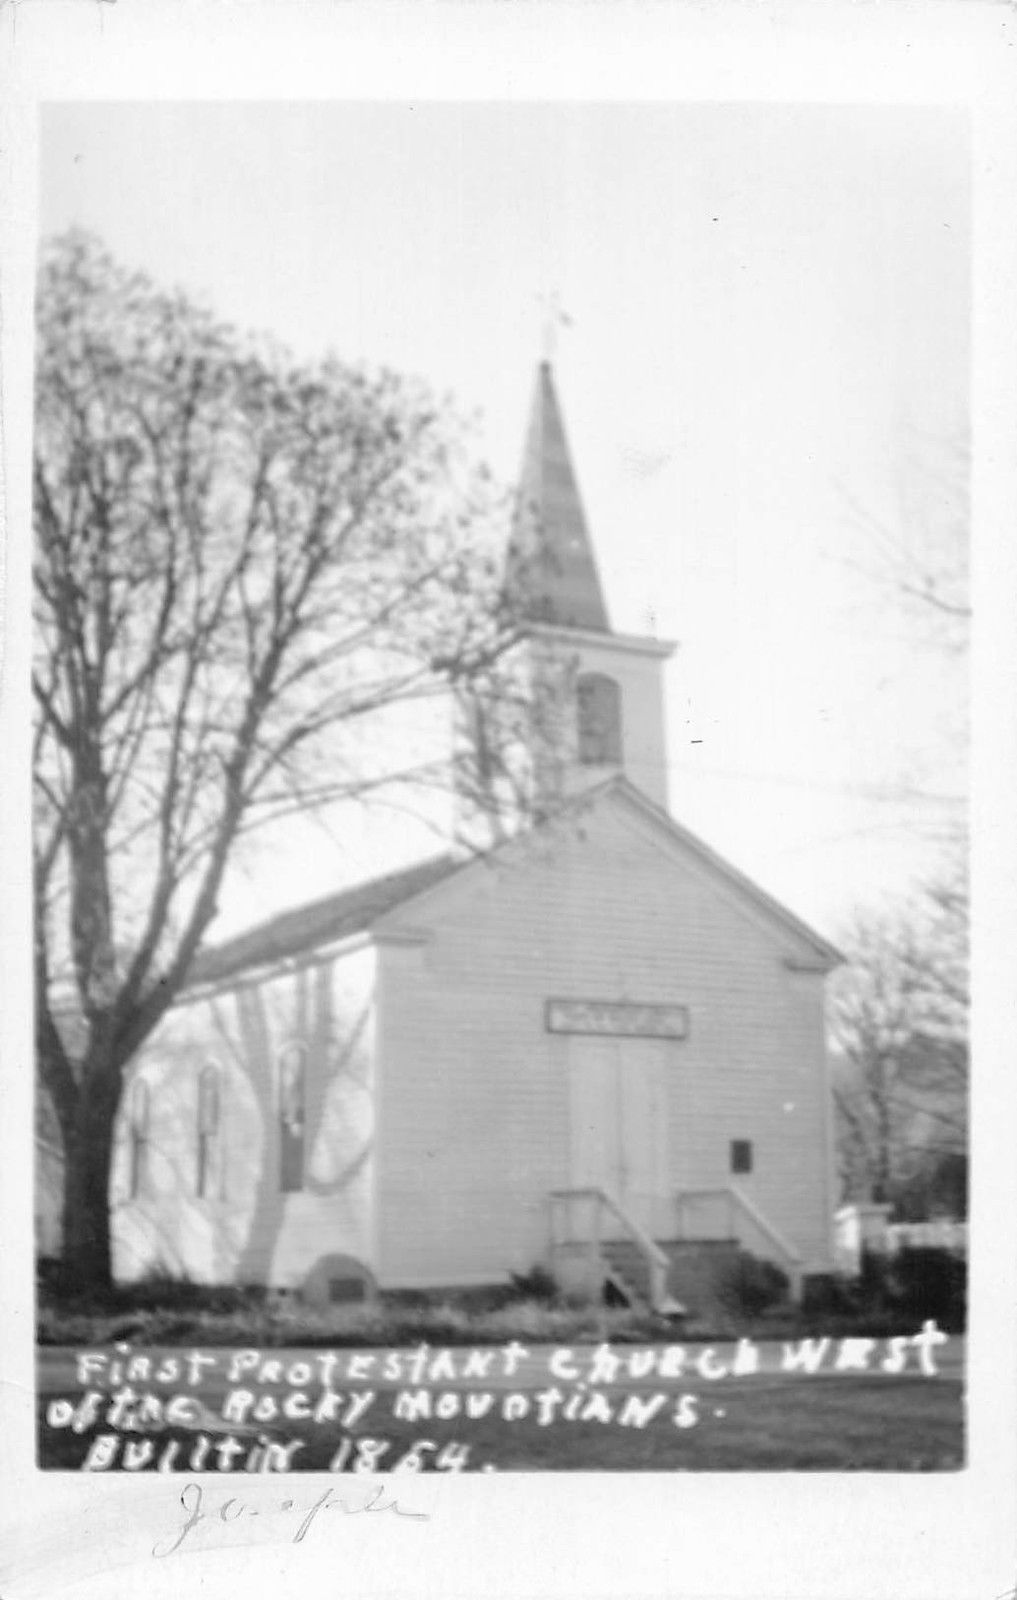 jasper colorado first protestant church west of rockies real photo pc y10544 mary l martin ltd postcards